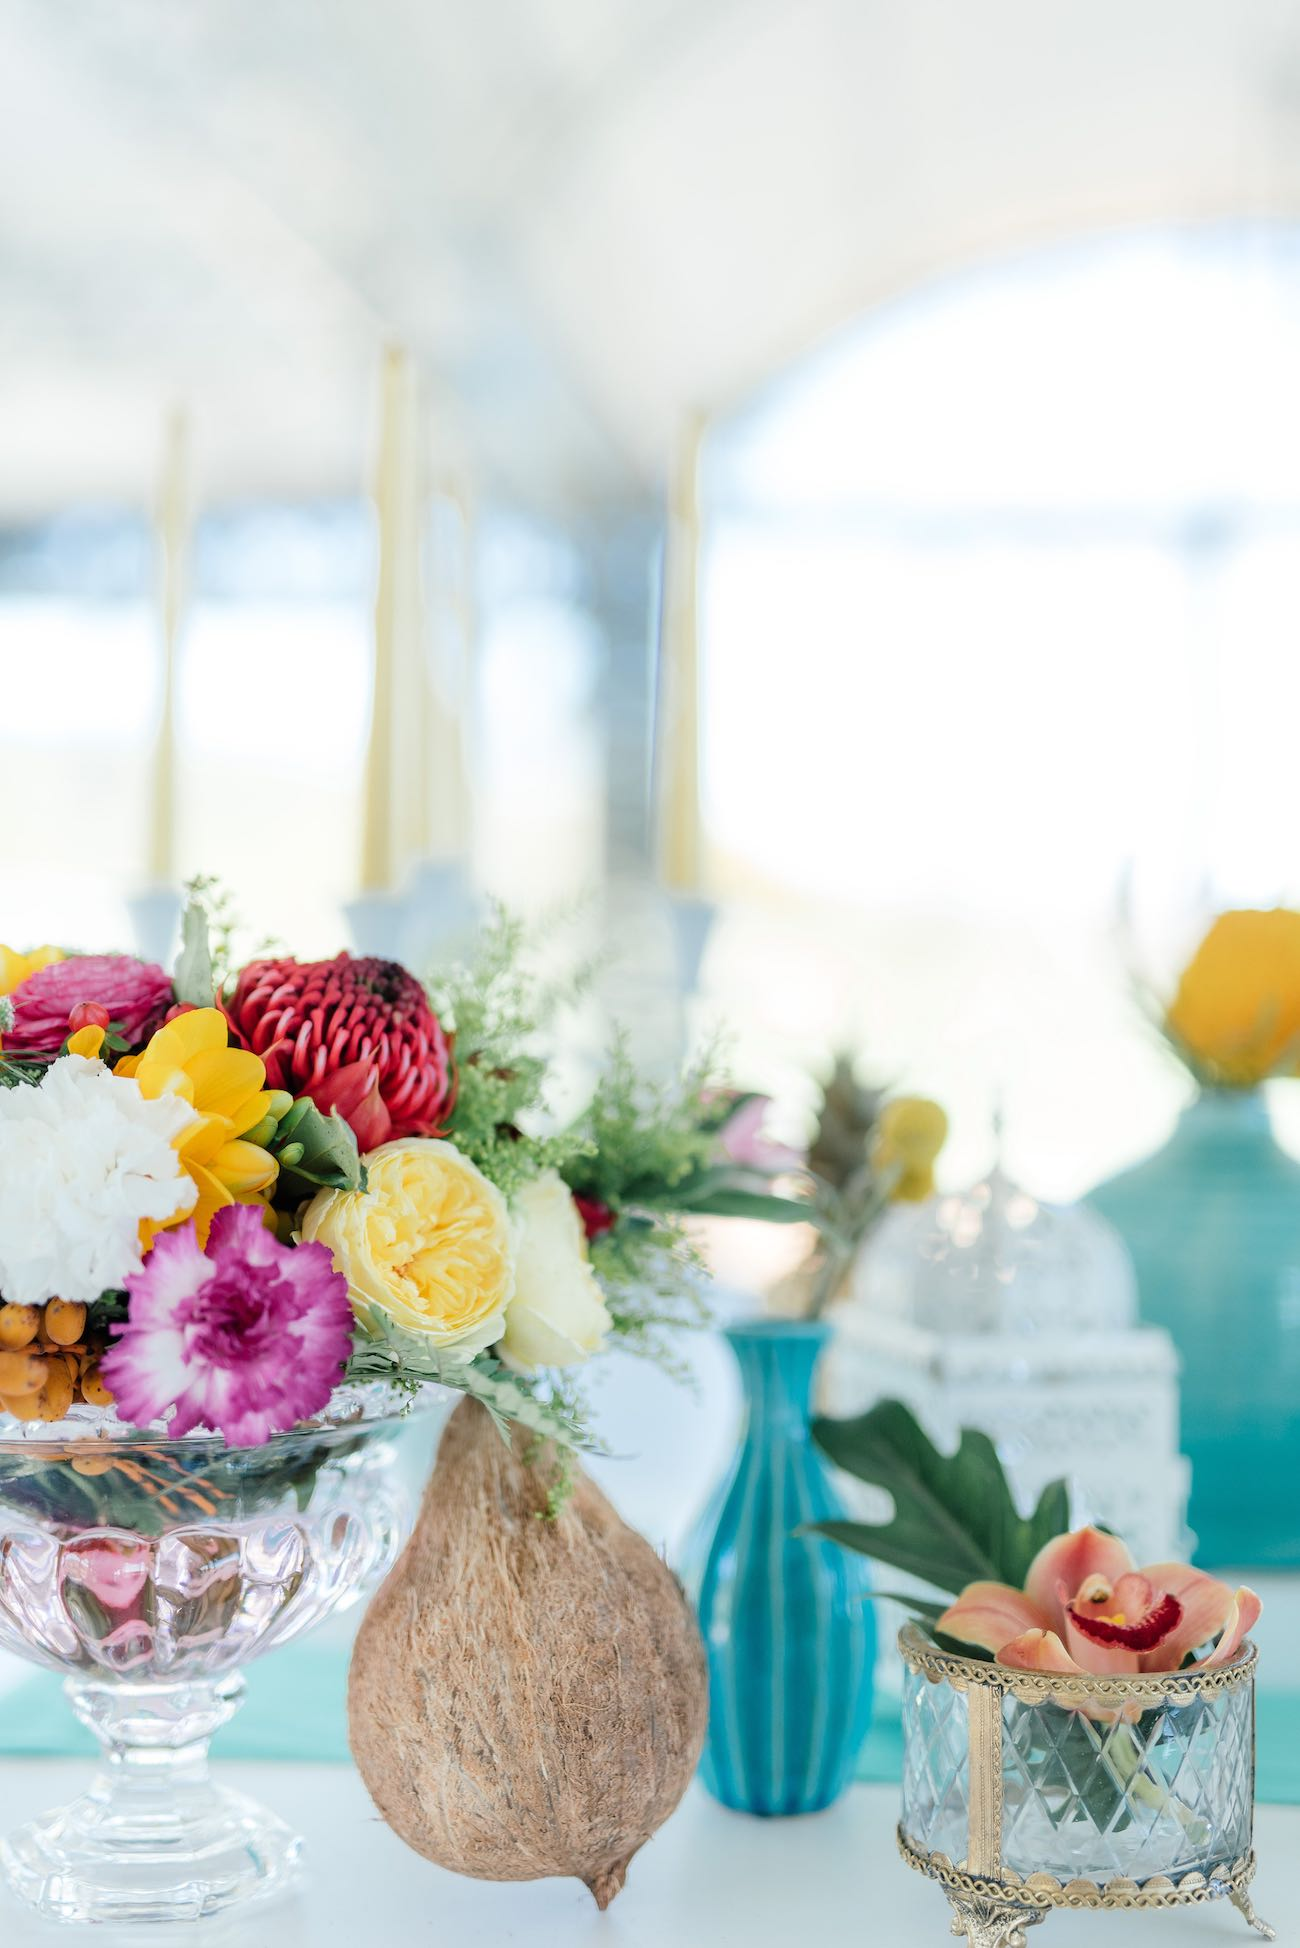 Yellow garden roses, red Protea, yellow tulips, pink blooms and ferns for a tropical wedding theme. Click for the most absolutely gorgeous Tropical Wedding ideas ever!